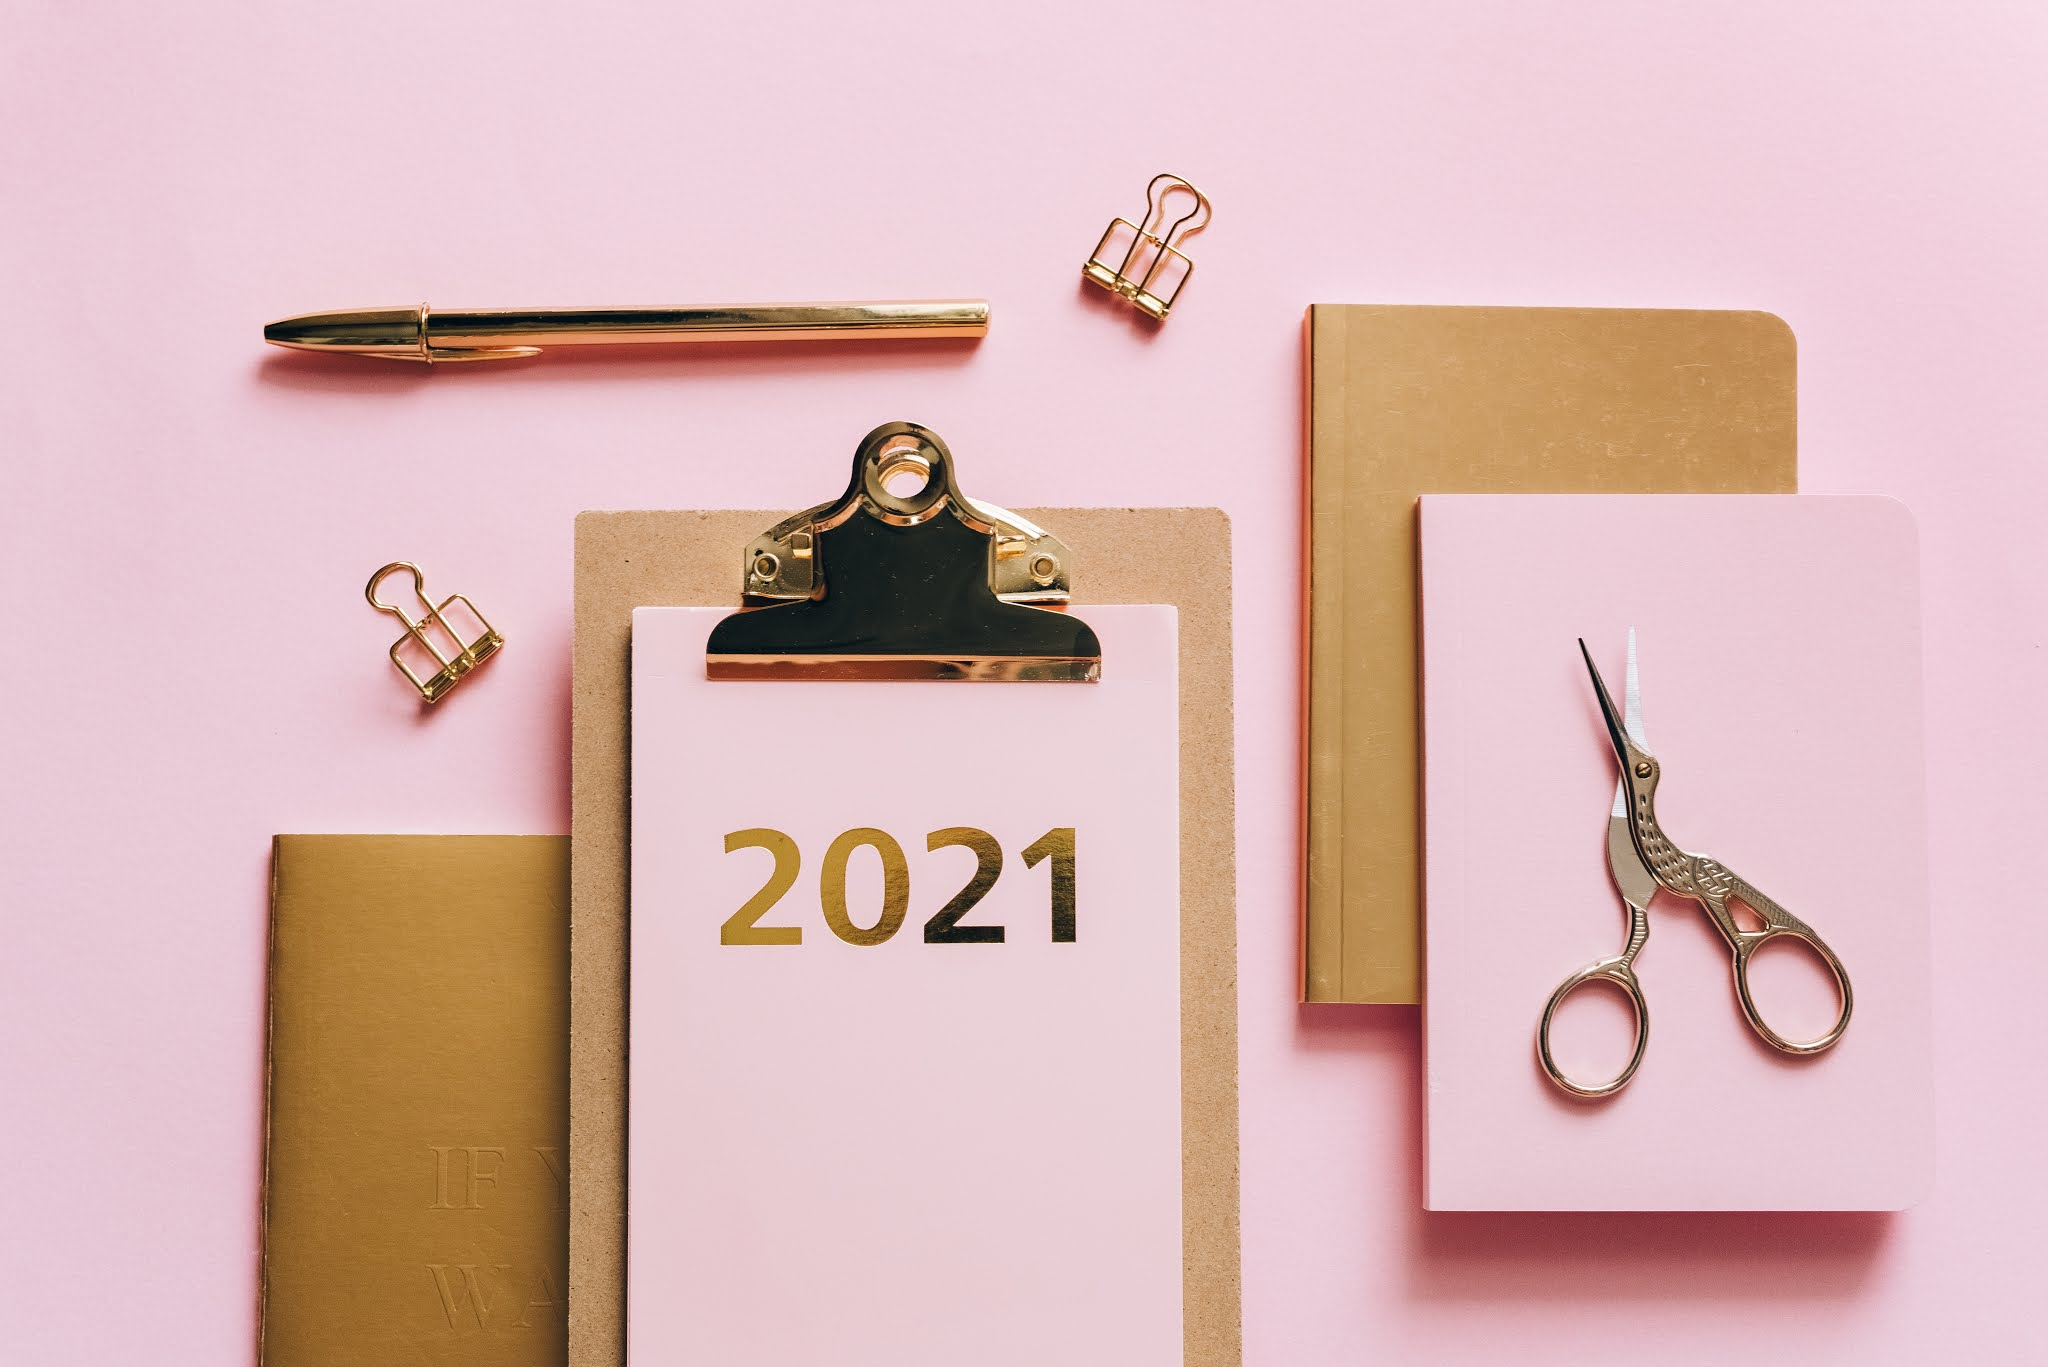 clipboard and stationery saying 2021